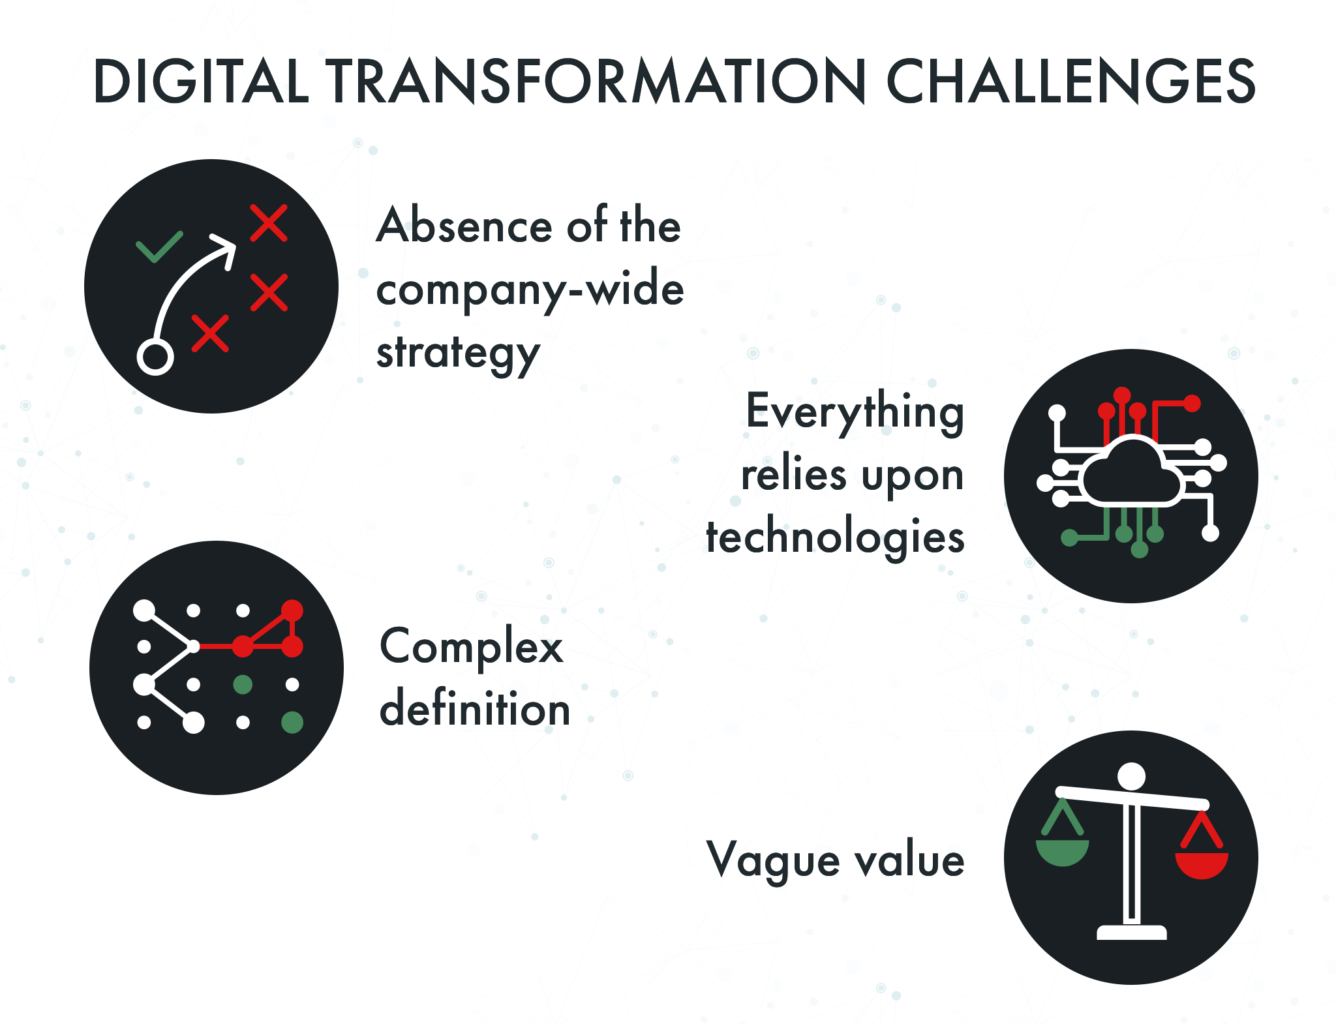 digitization challenges